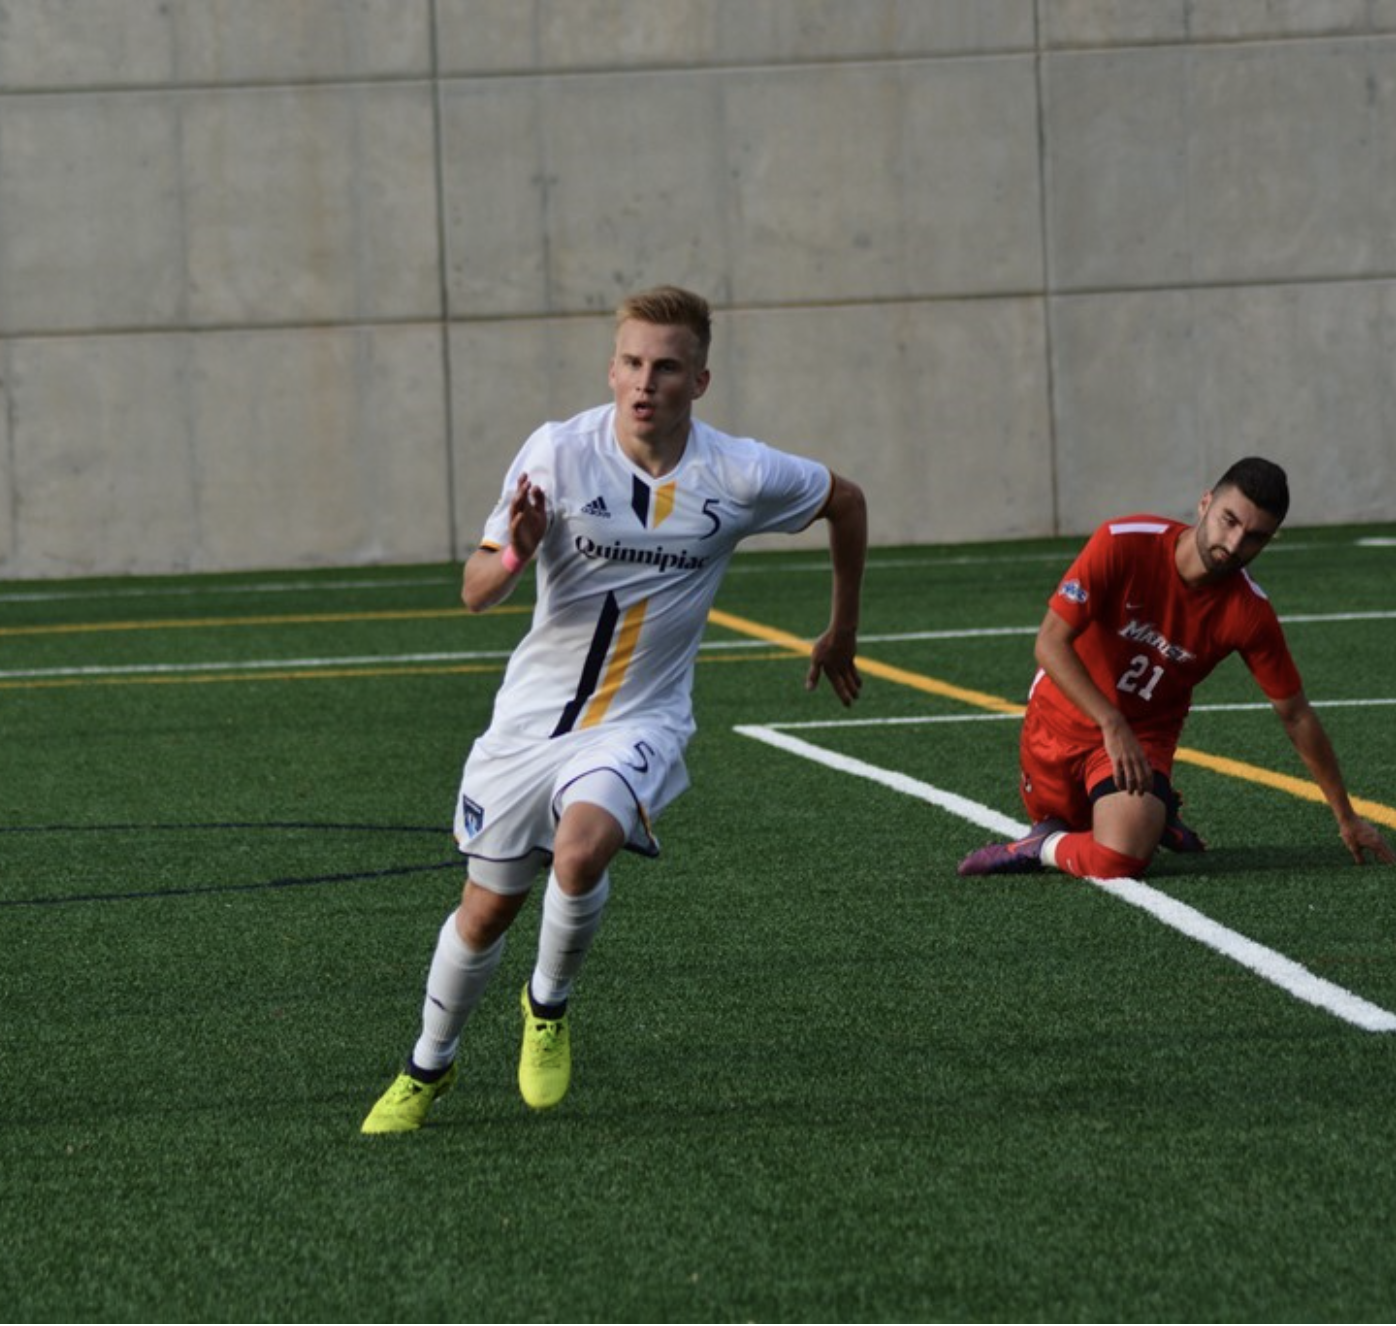 Simon Hillinger scores two goals, Quinnipiac defeats Marist 3-2